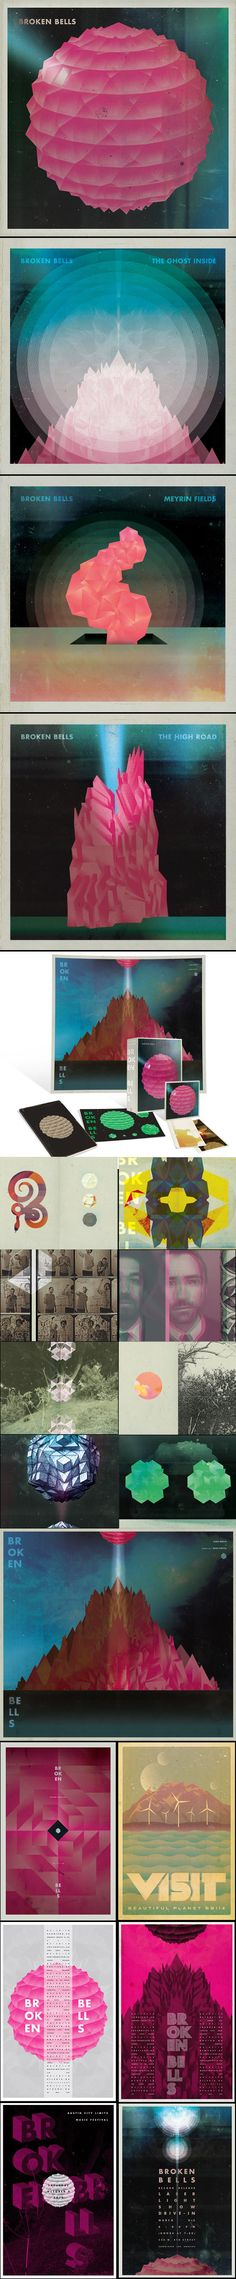 Broken Bells — Complete Covers Collection by Jacob Escobedo #music #album #design (via http://mmth.us/simplify)